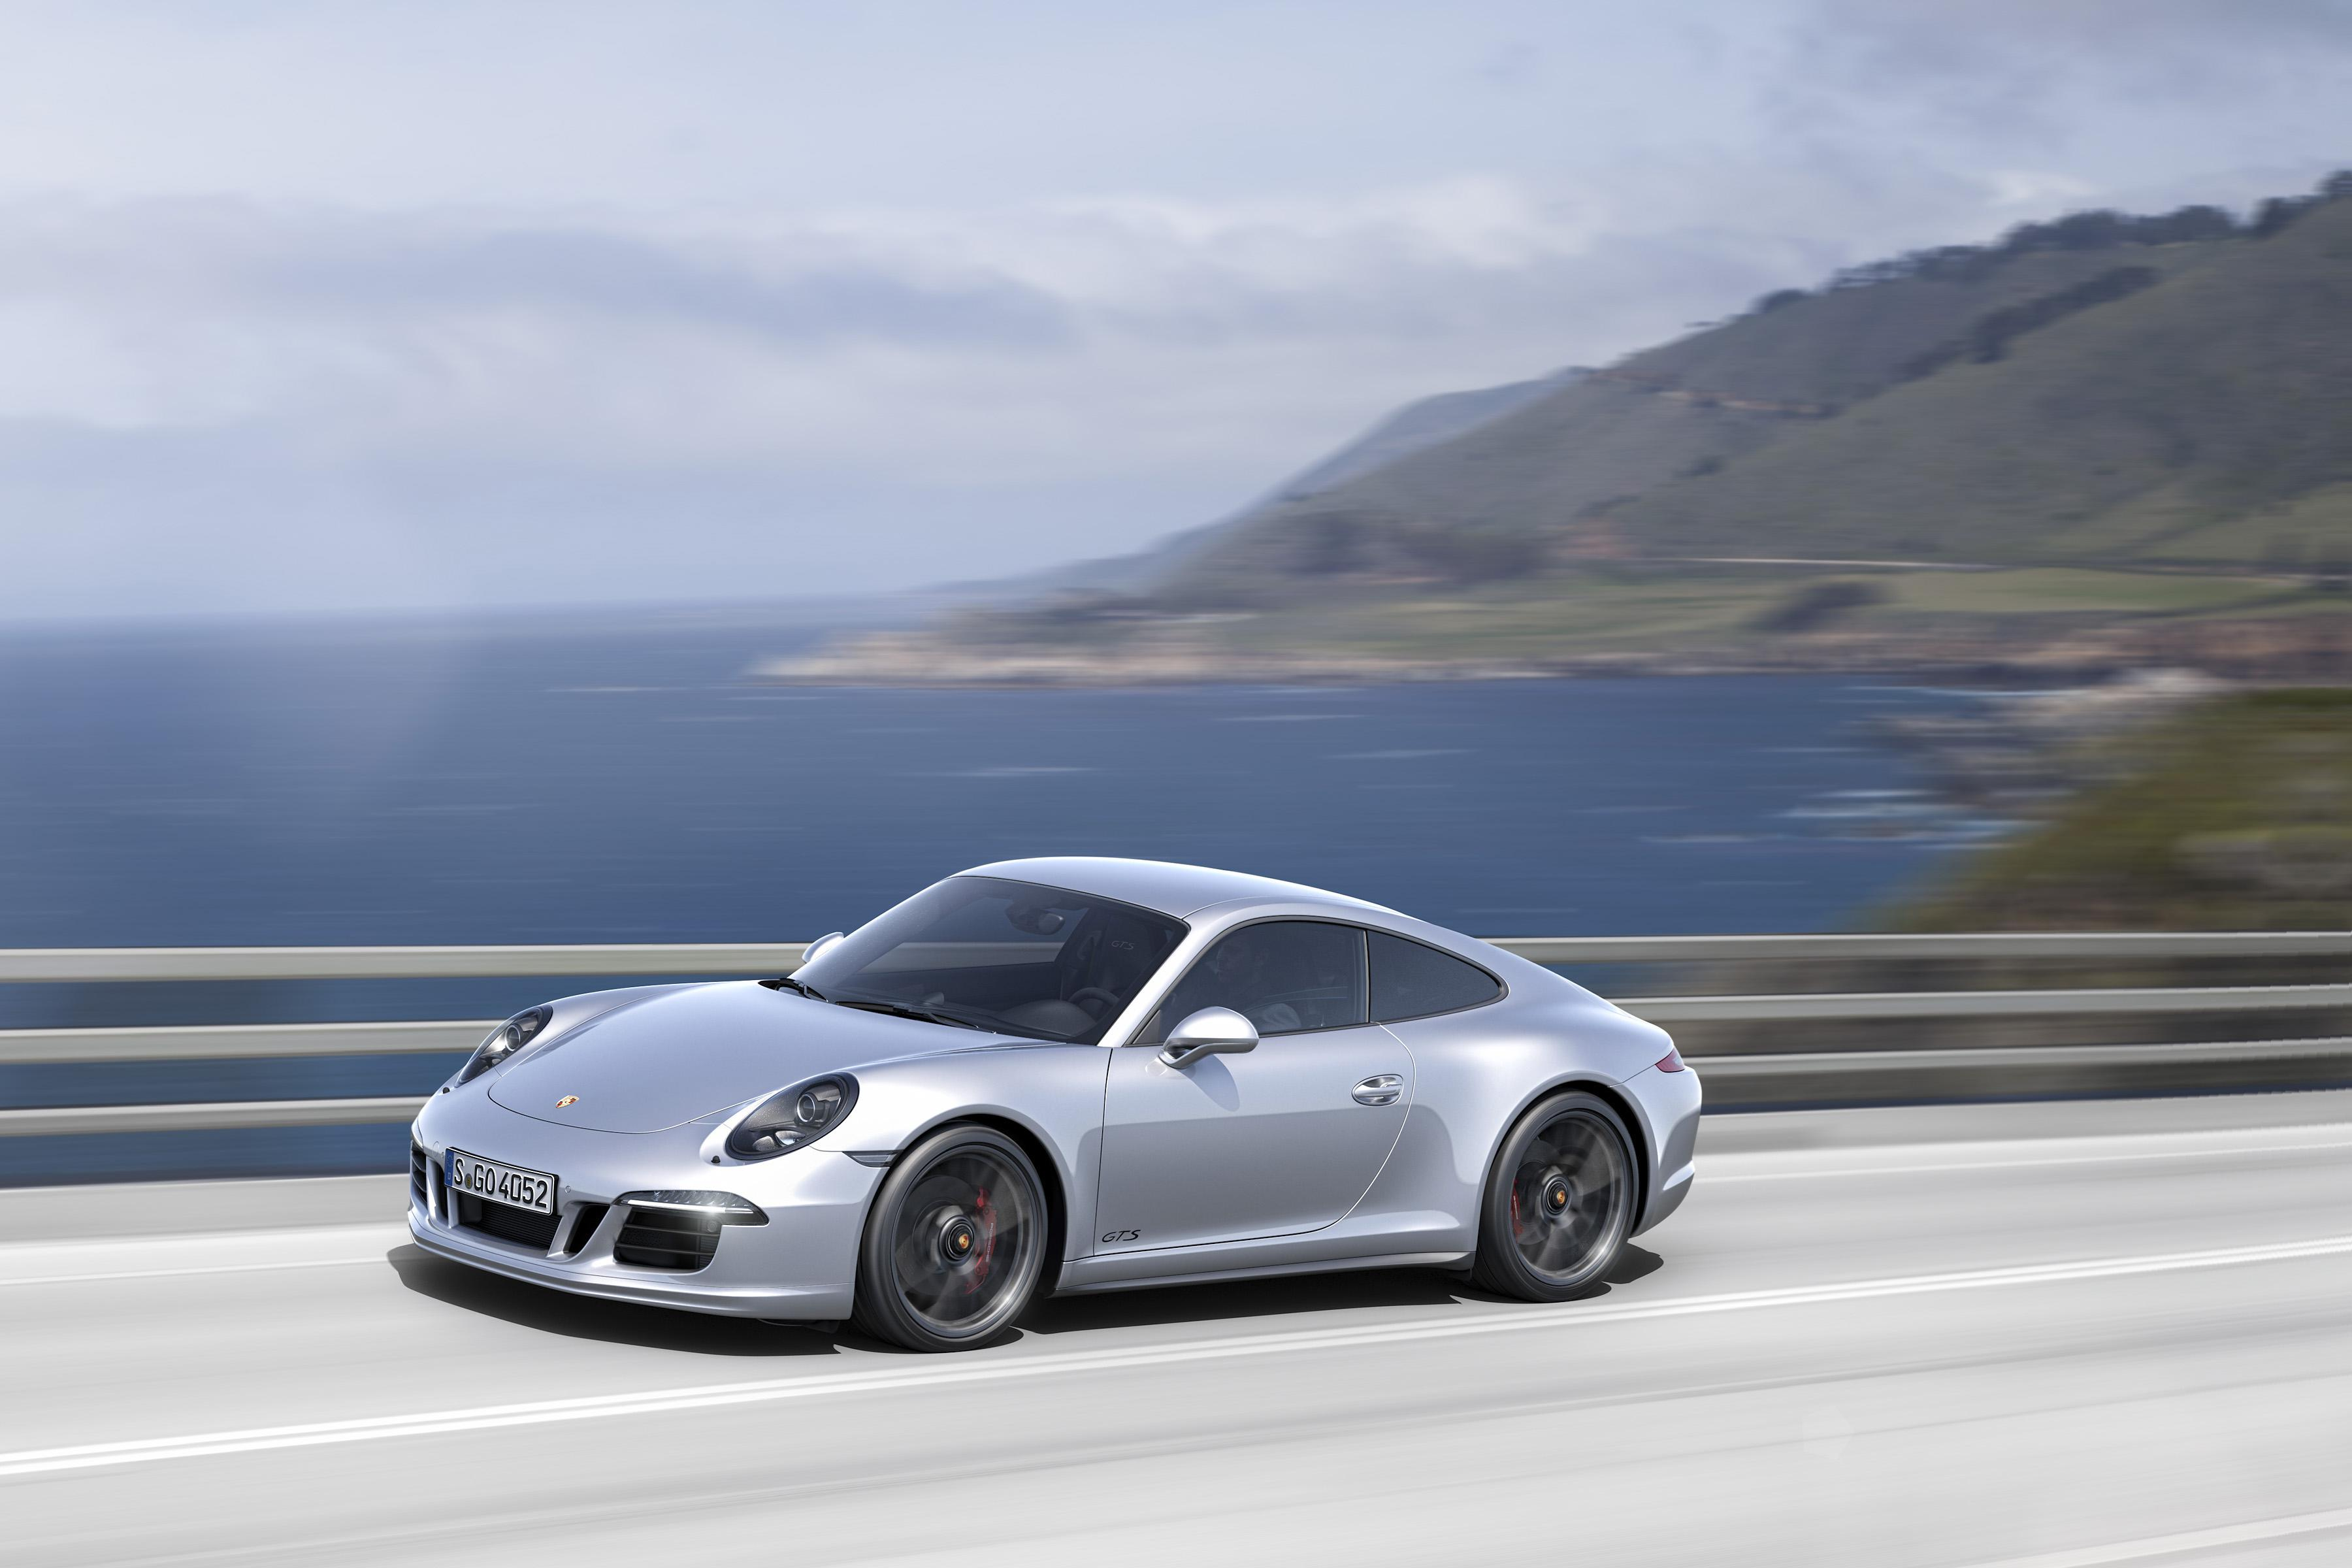 The Driveru0027s Choice In The Cool Cars List, The Porsche 911 Is An Icon Of